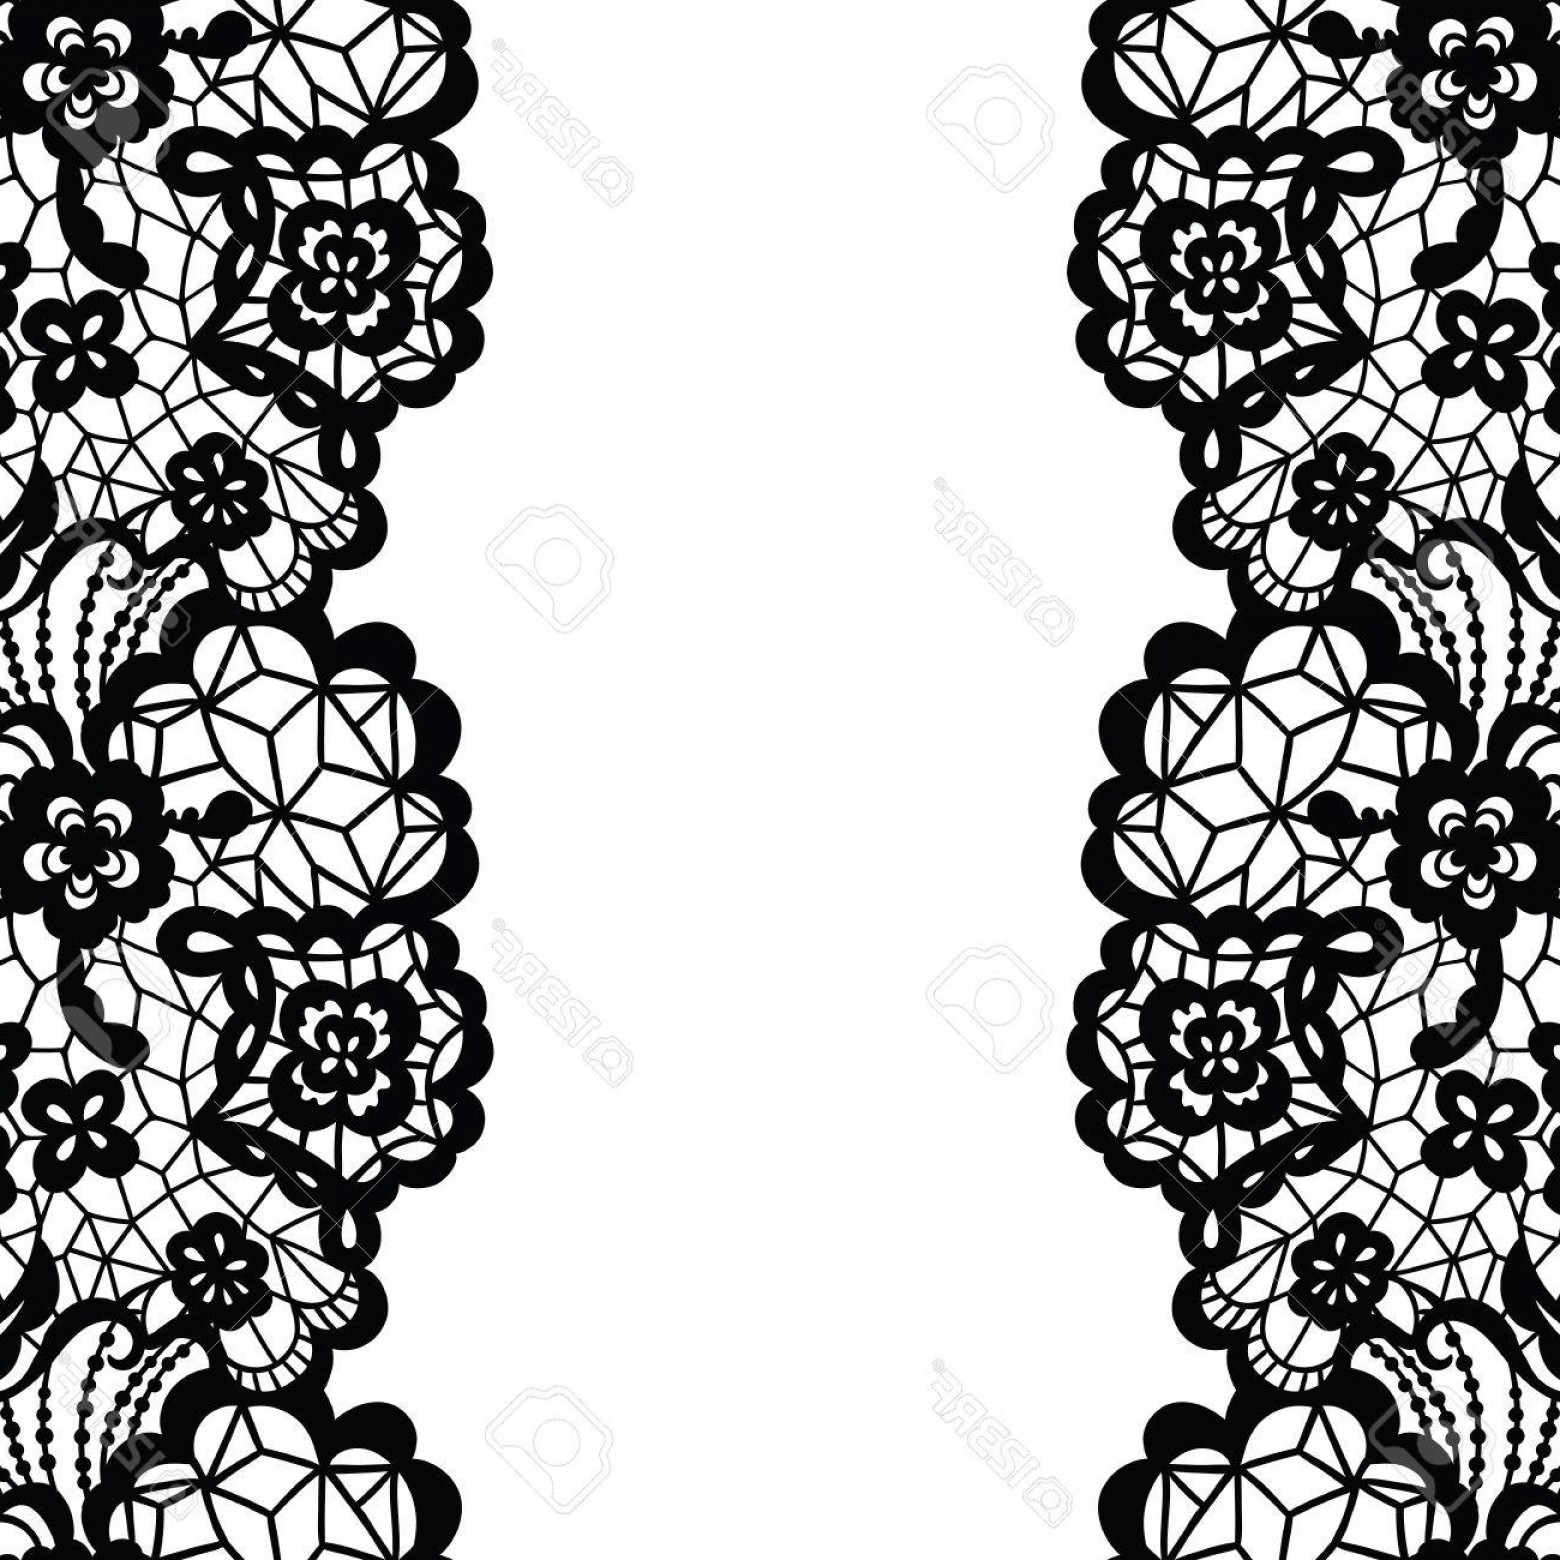 Floral Lace Trim Vector: Photostock Vector Seamless Lace Border Vector Illustration Black Lacy Vintage Elegant Trim